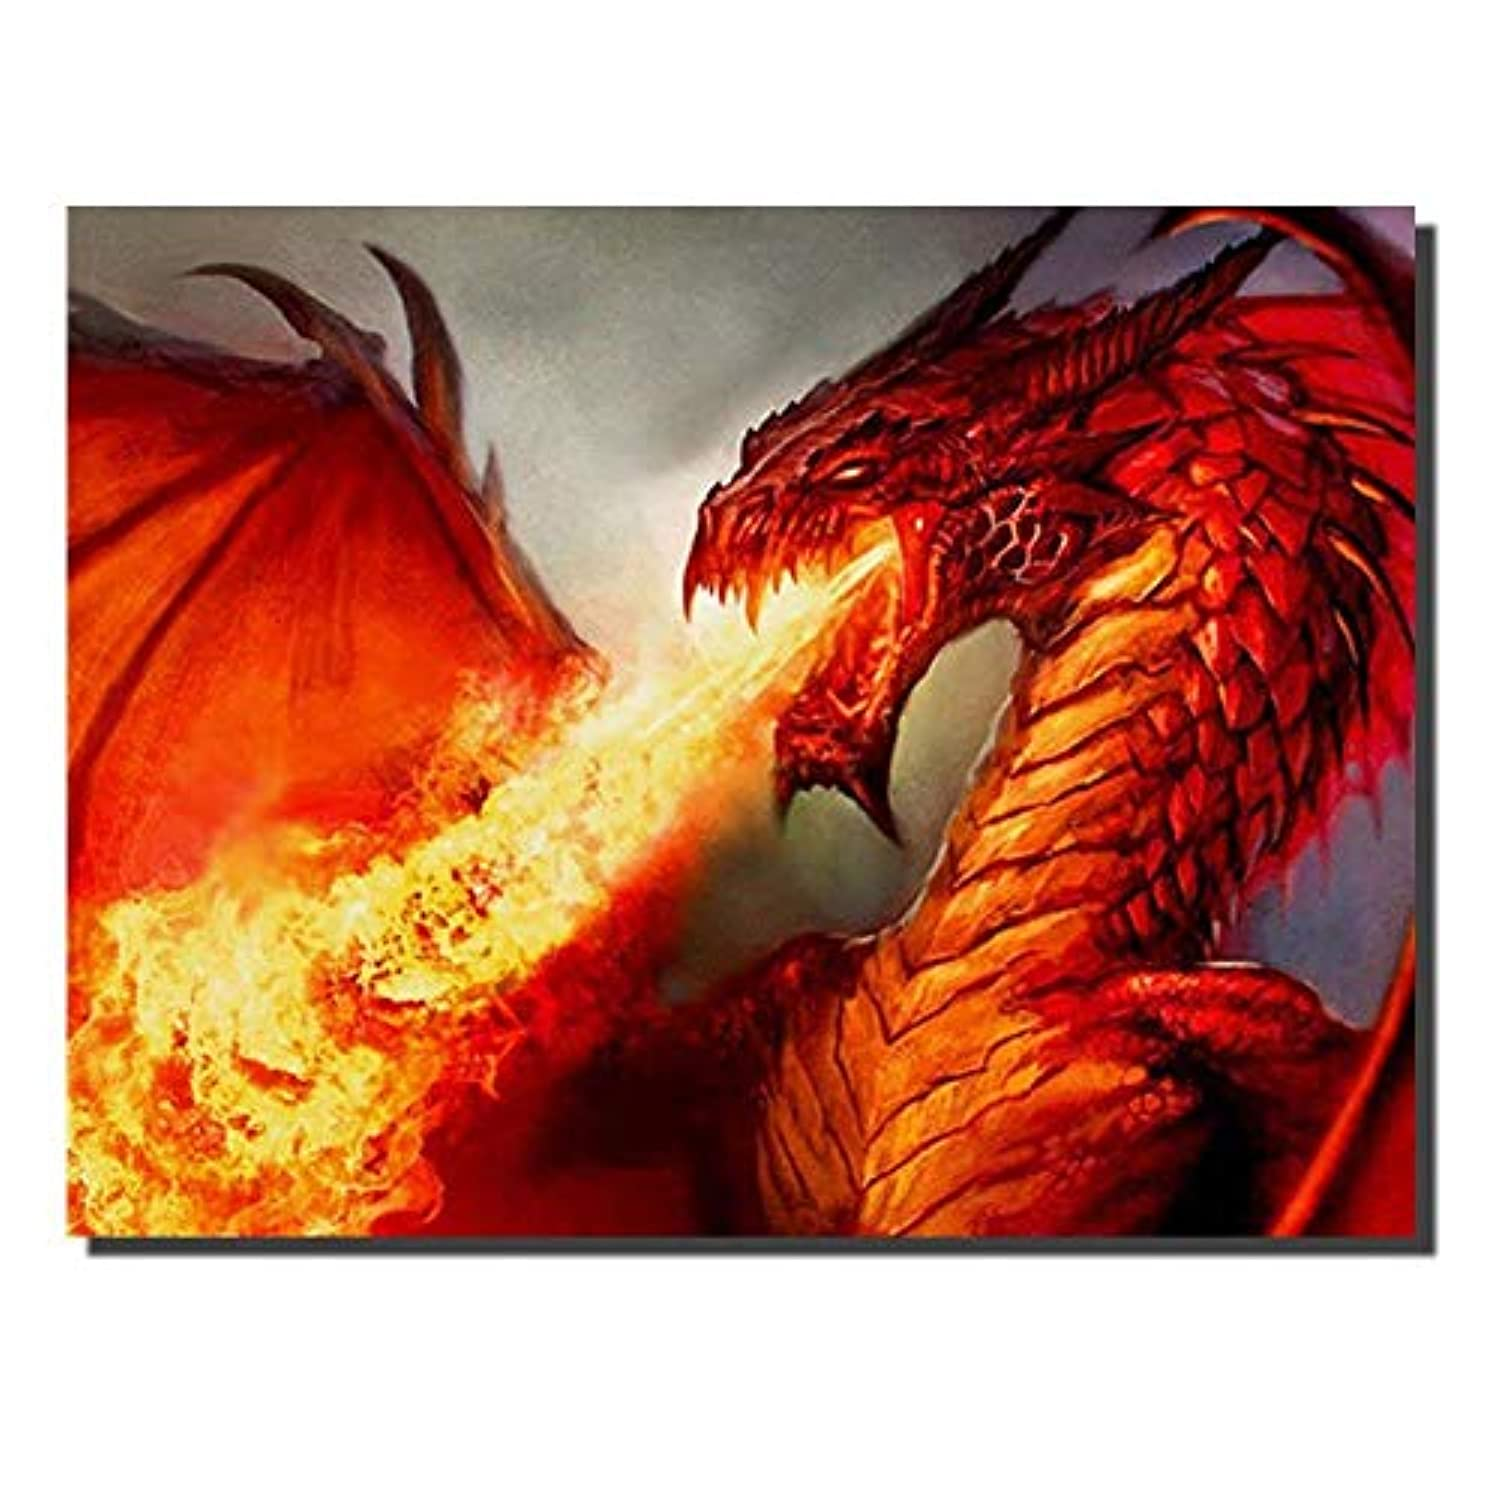 Diamond Dotz Kits Diamond Painting by Number Kits for Adults Dragon 30 x 40 cm